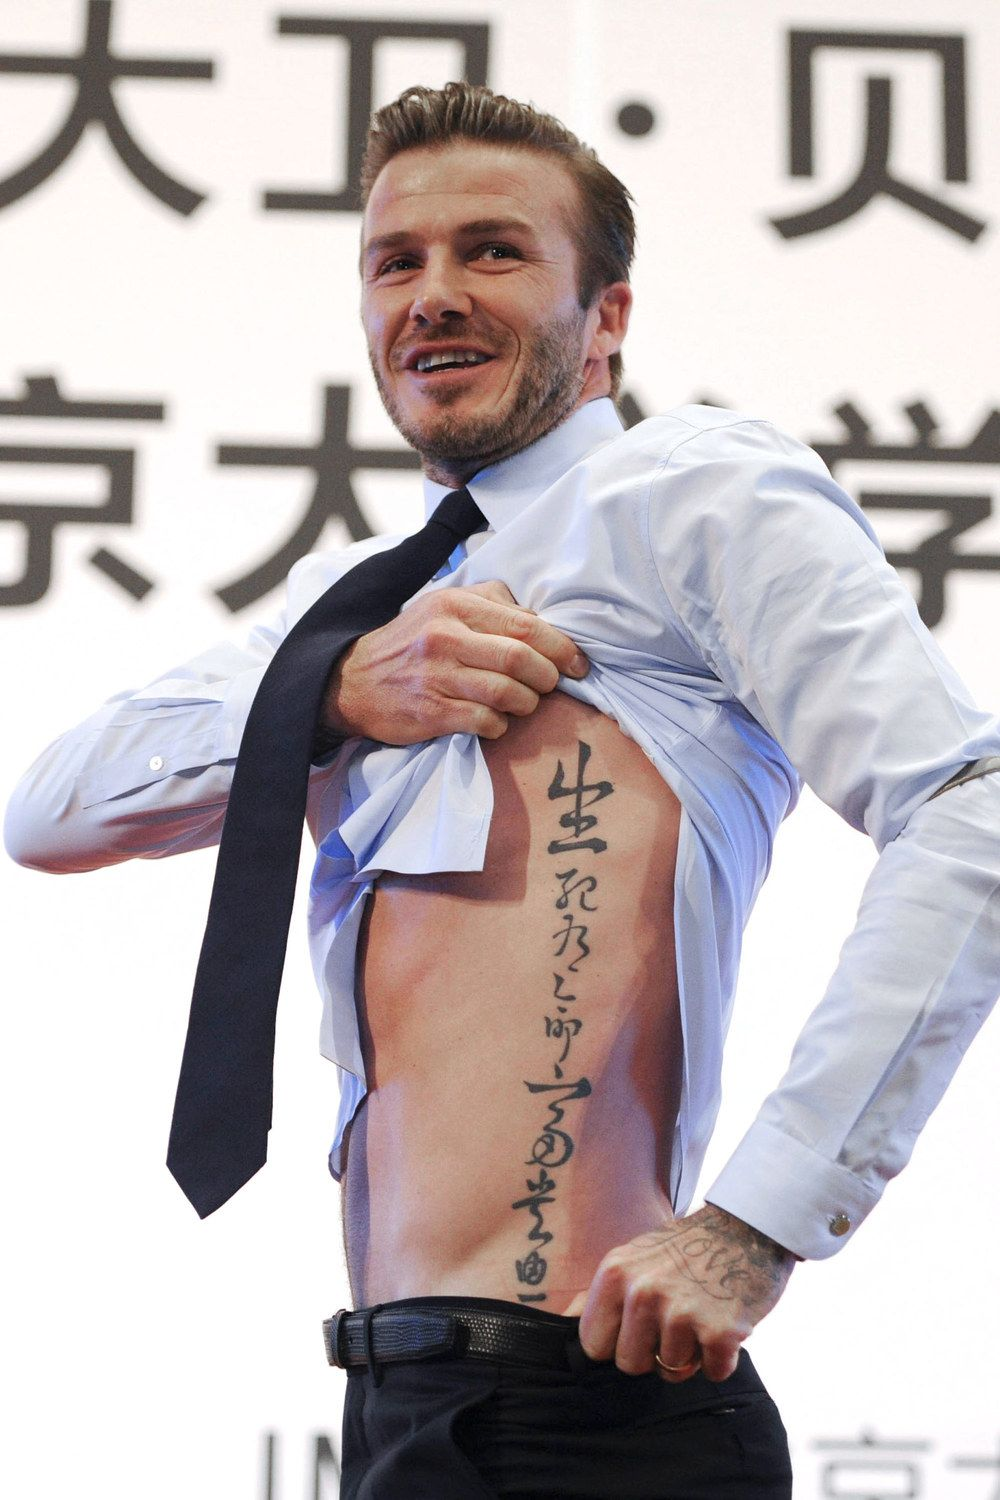 The Best Lecture Ever David Beckham Lifts Up His Top To Reveal His